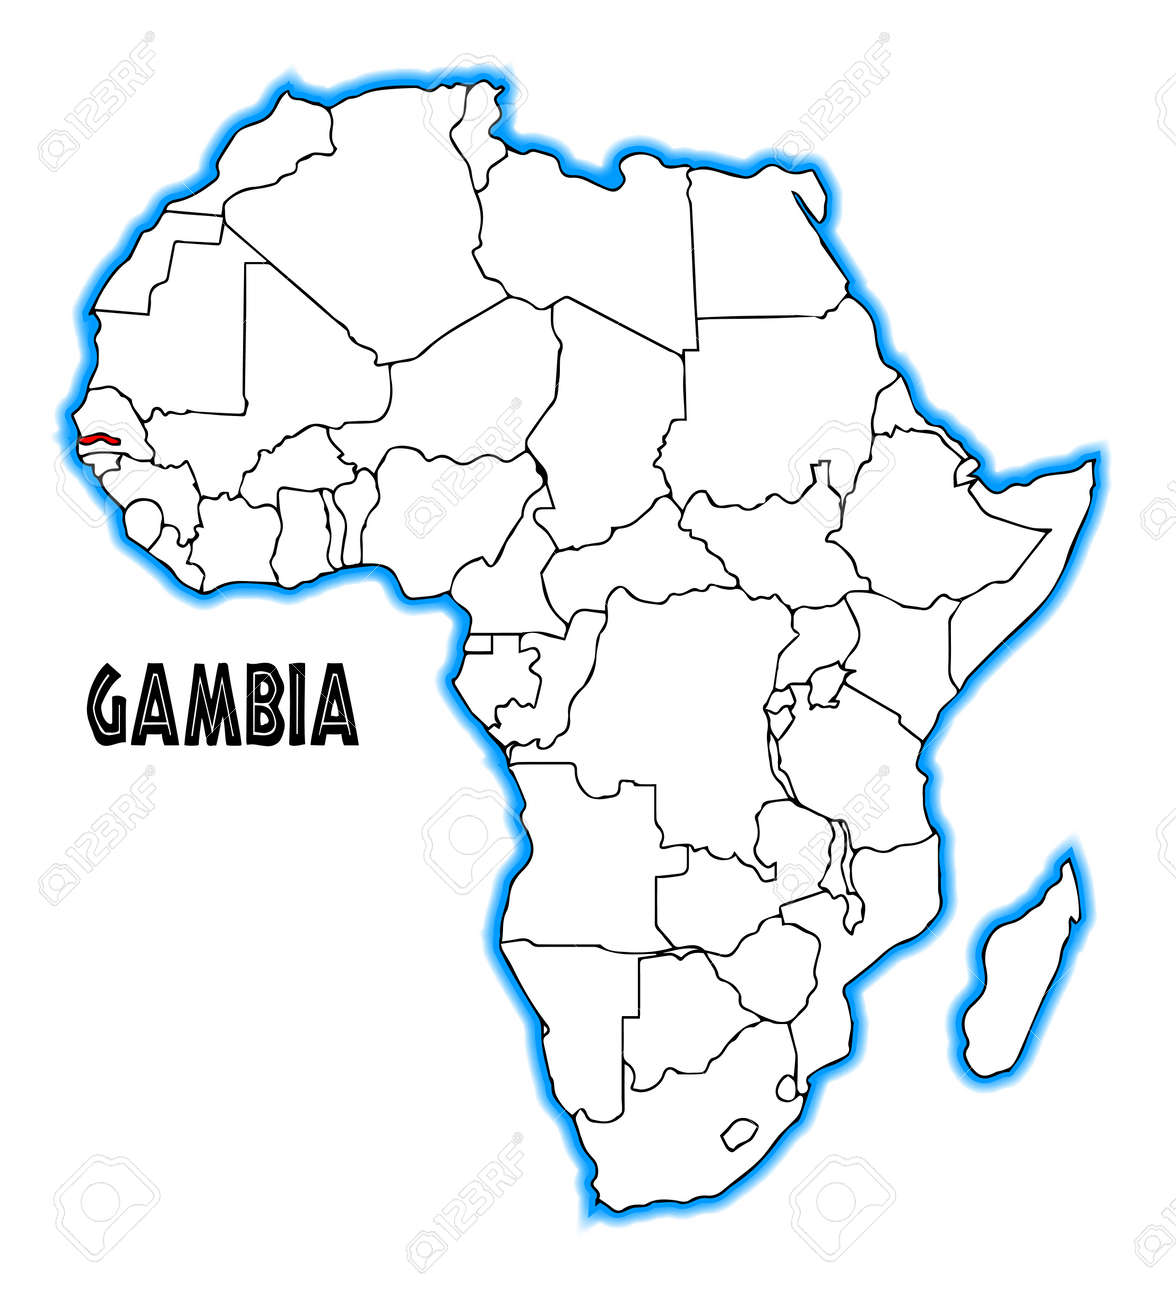 Gambia Outline Inset Into A Map Of Africa Over A White Background